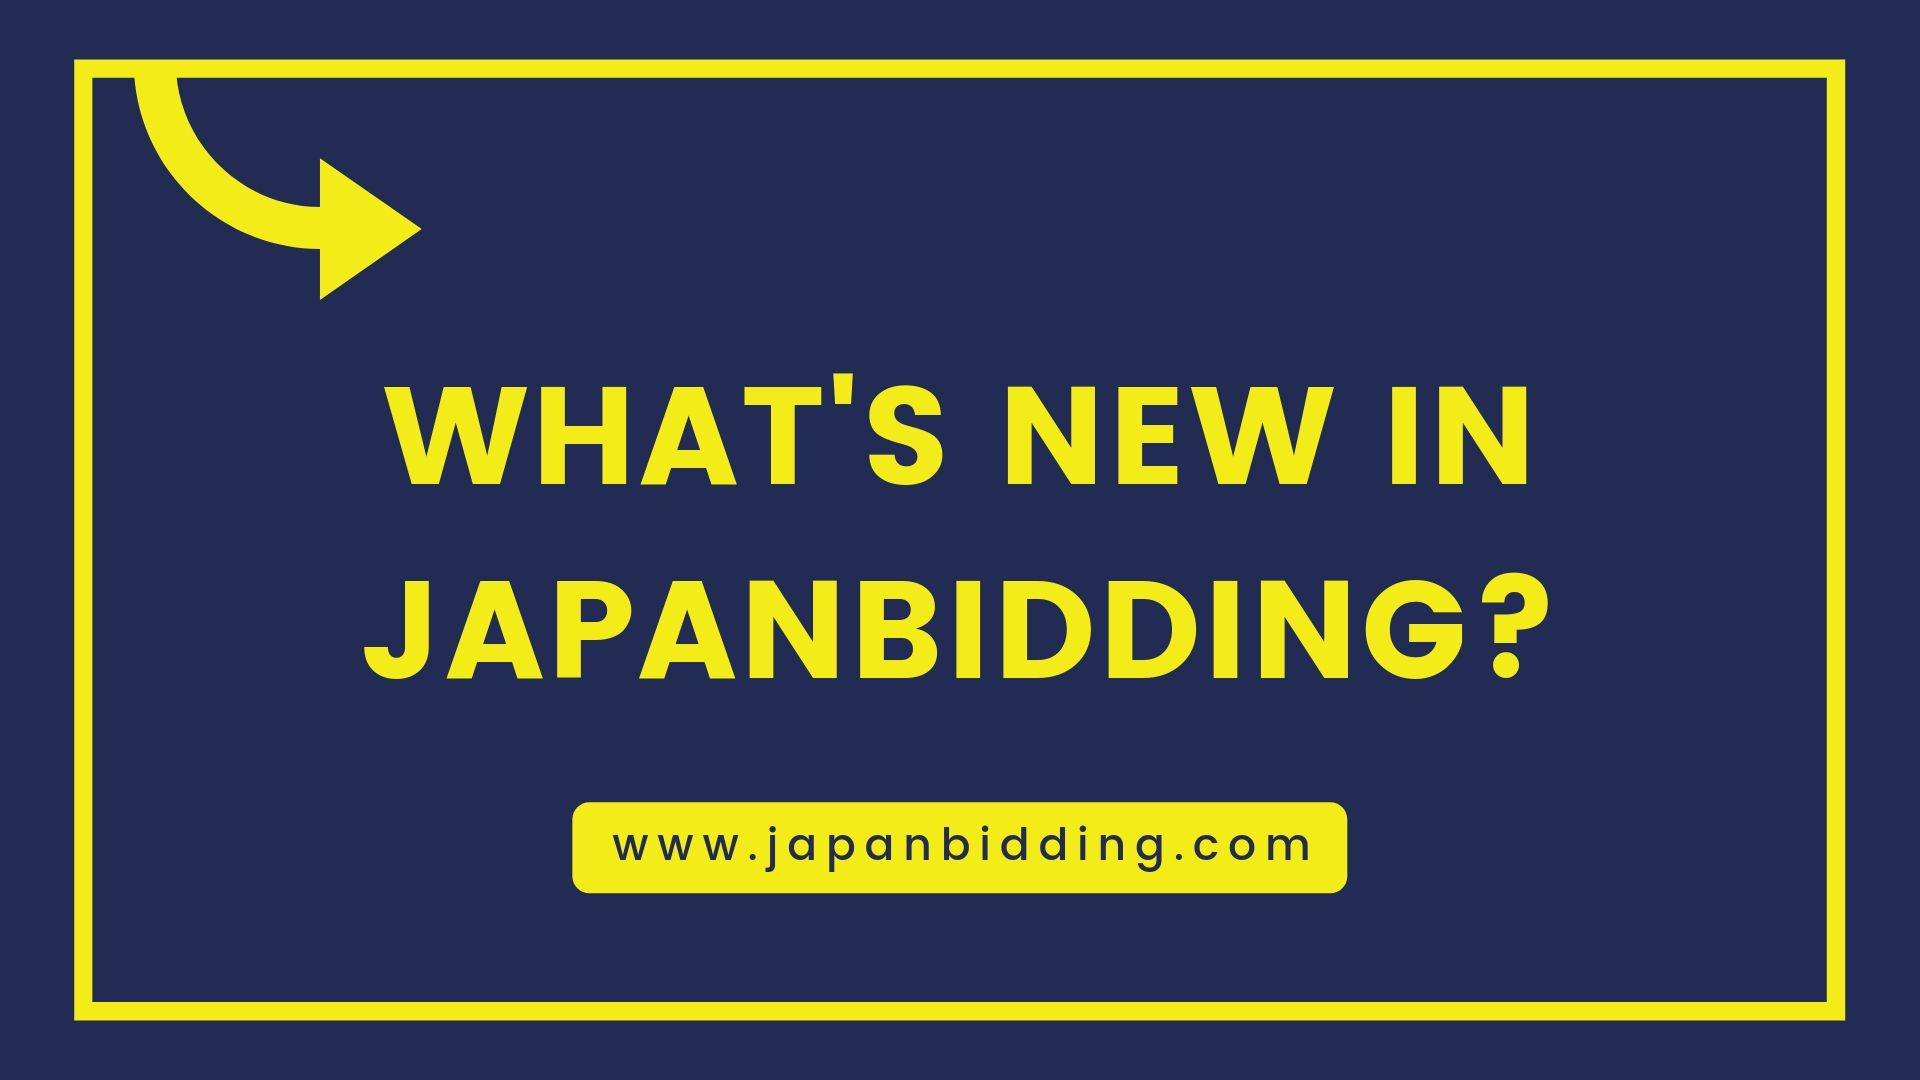 What's New in Japanbidding?